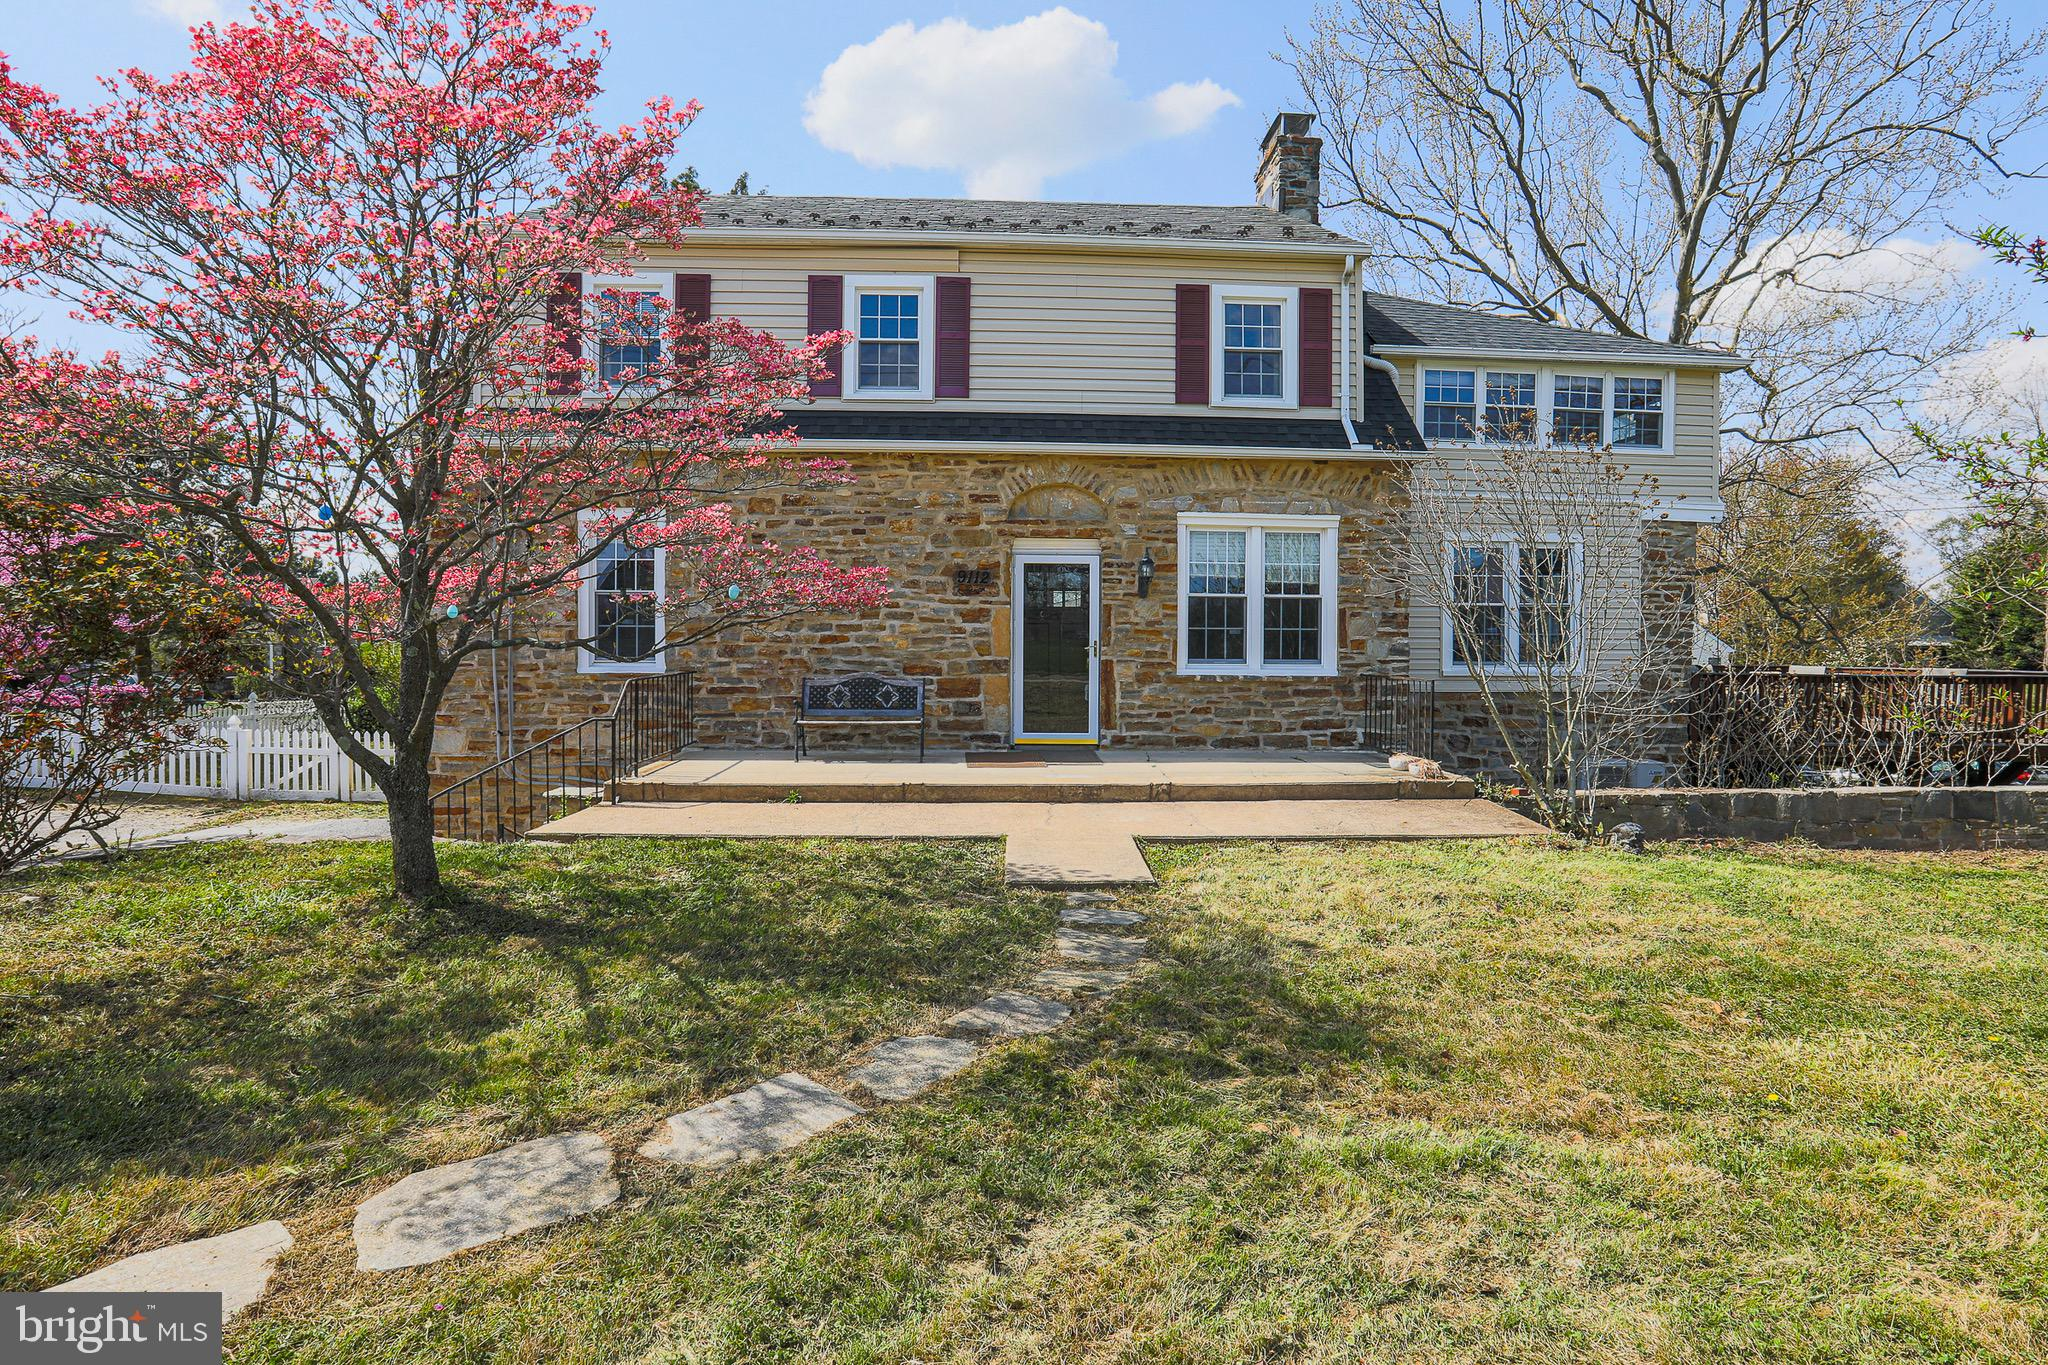 9112 Old Harford Rd, Baltimore, MD, 21234